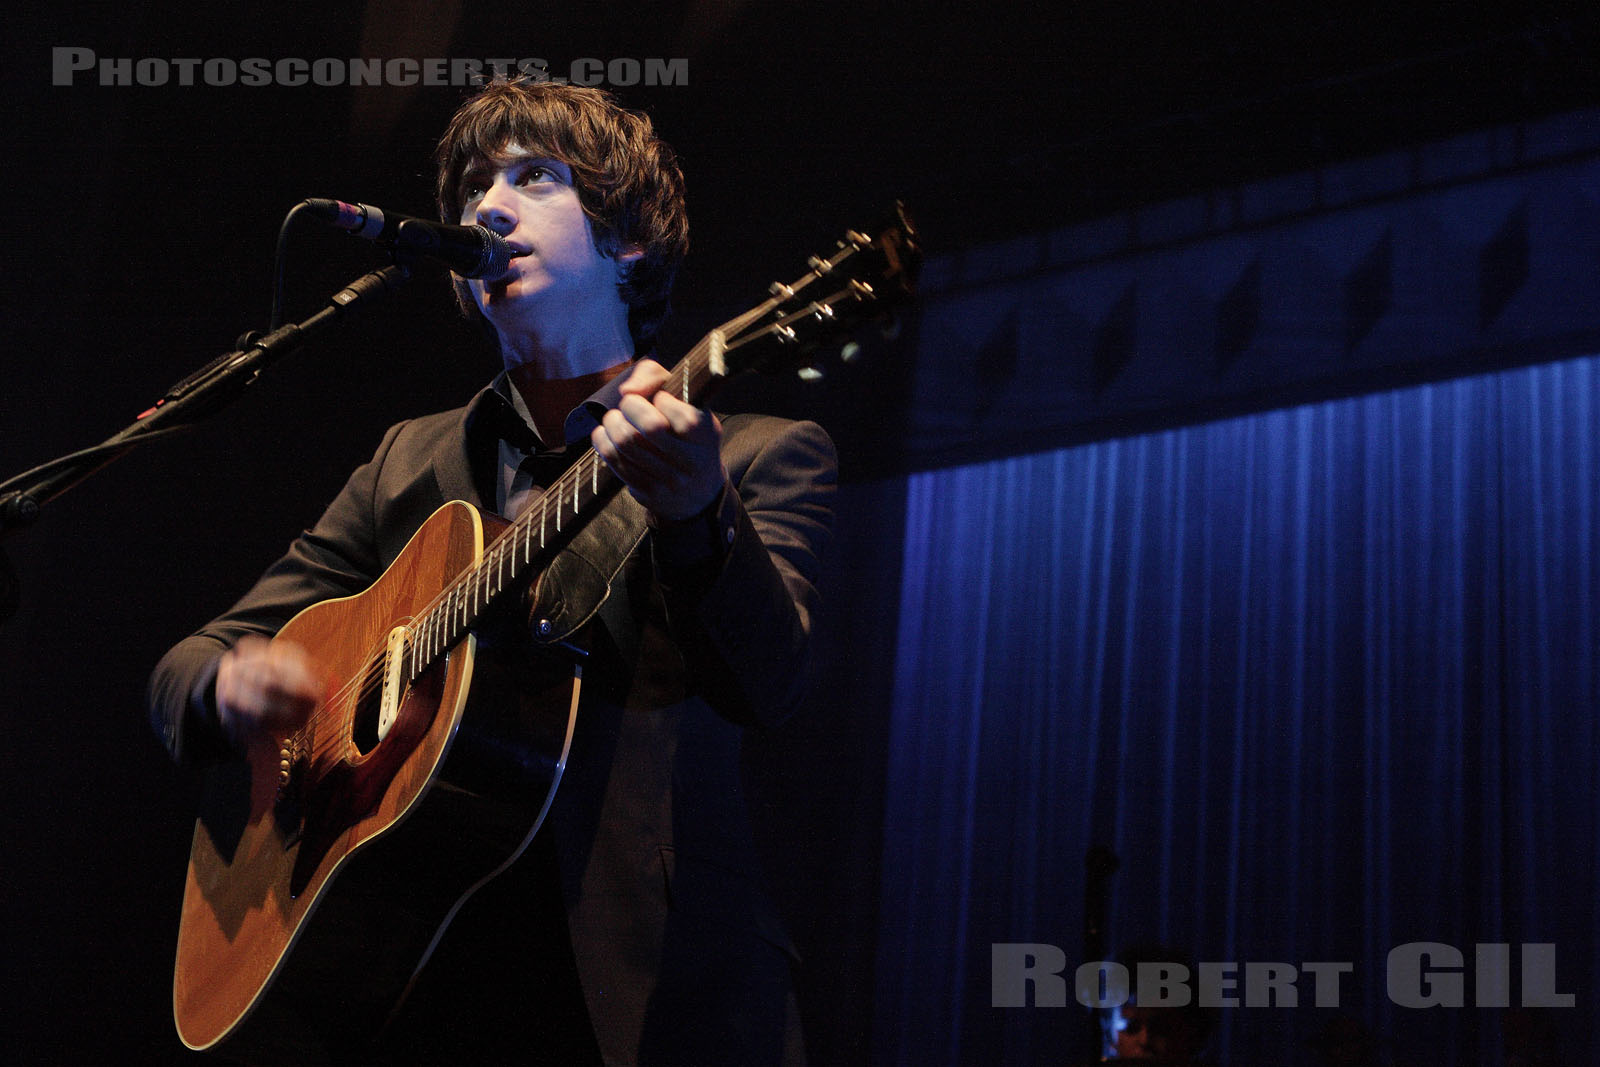 THE LAST SHADOW PUPPETS - 2008-08-26 - PARIS - Olympia